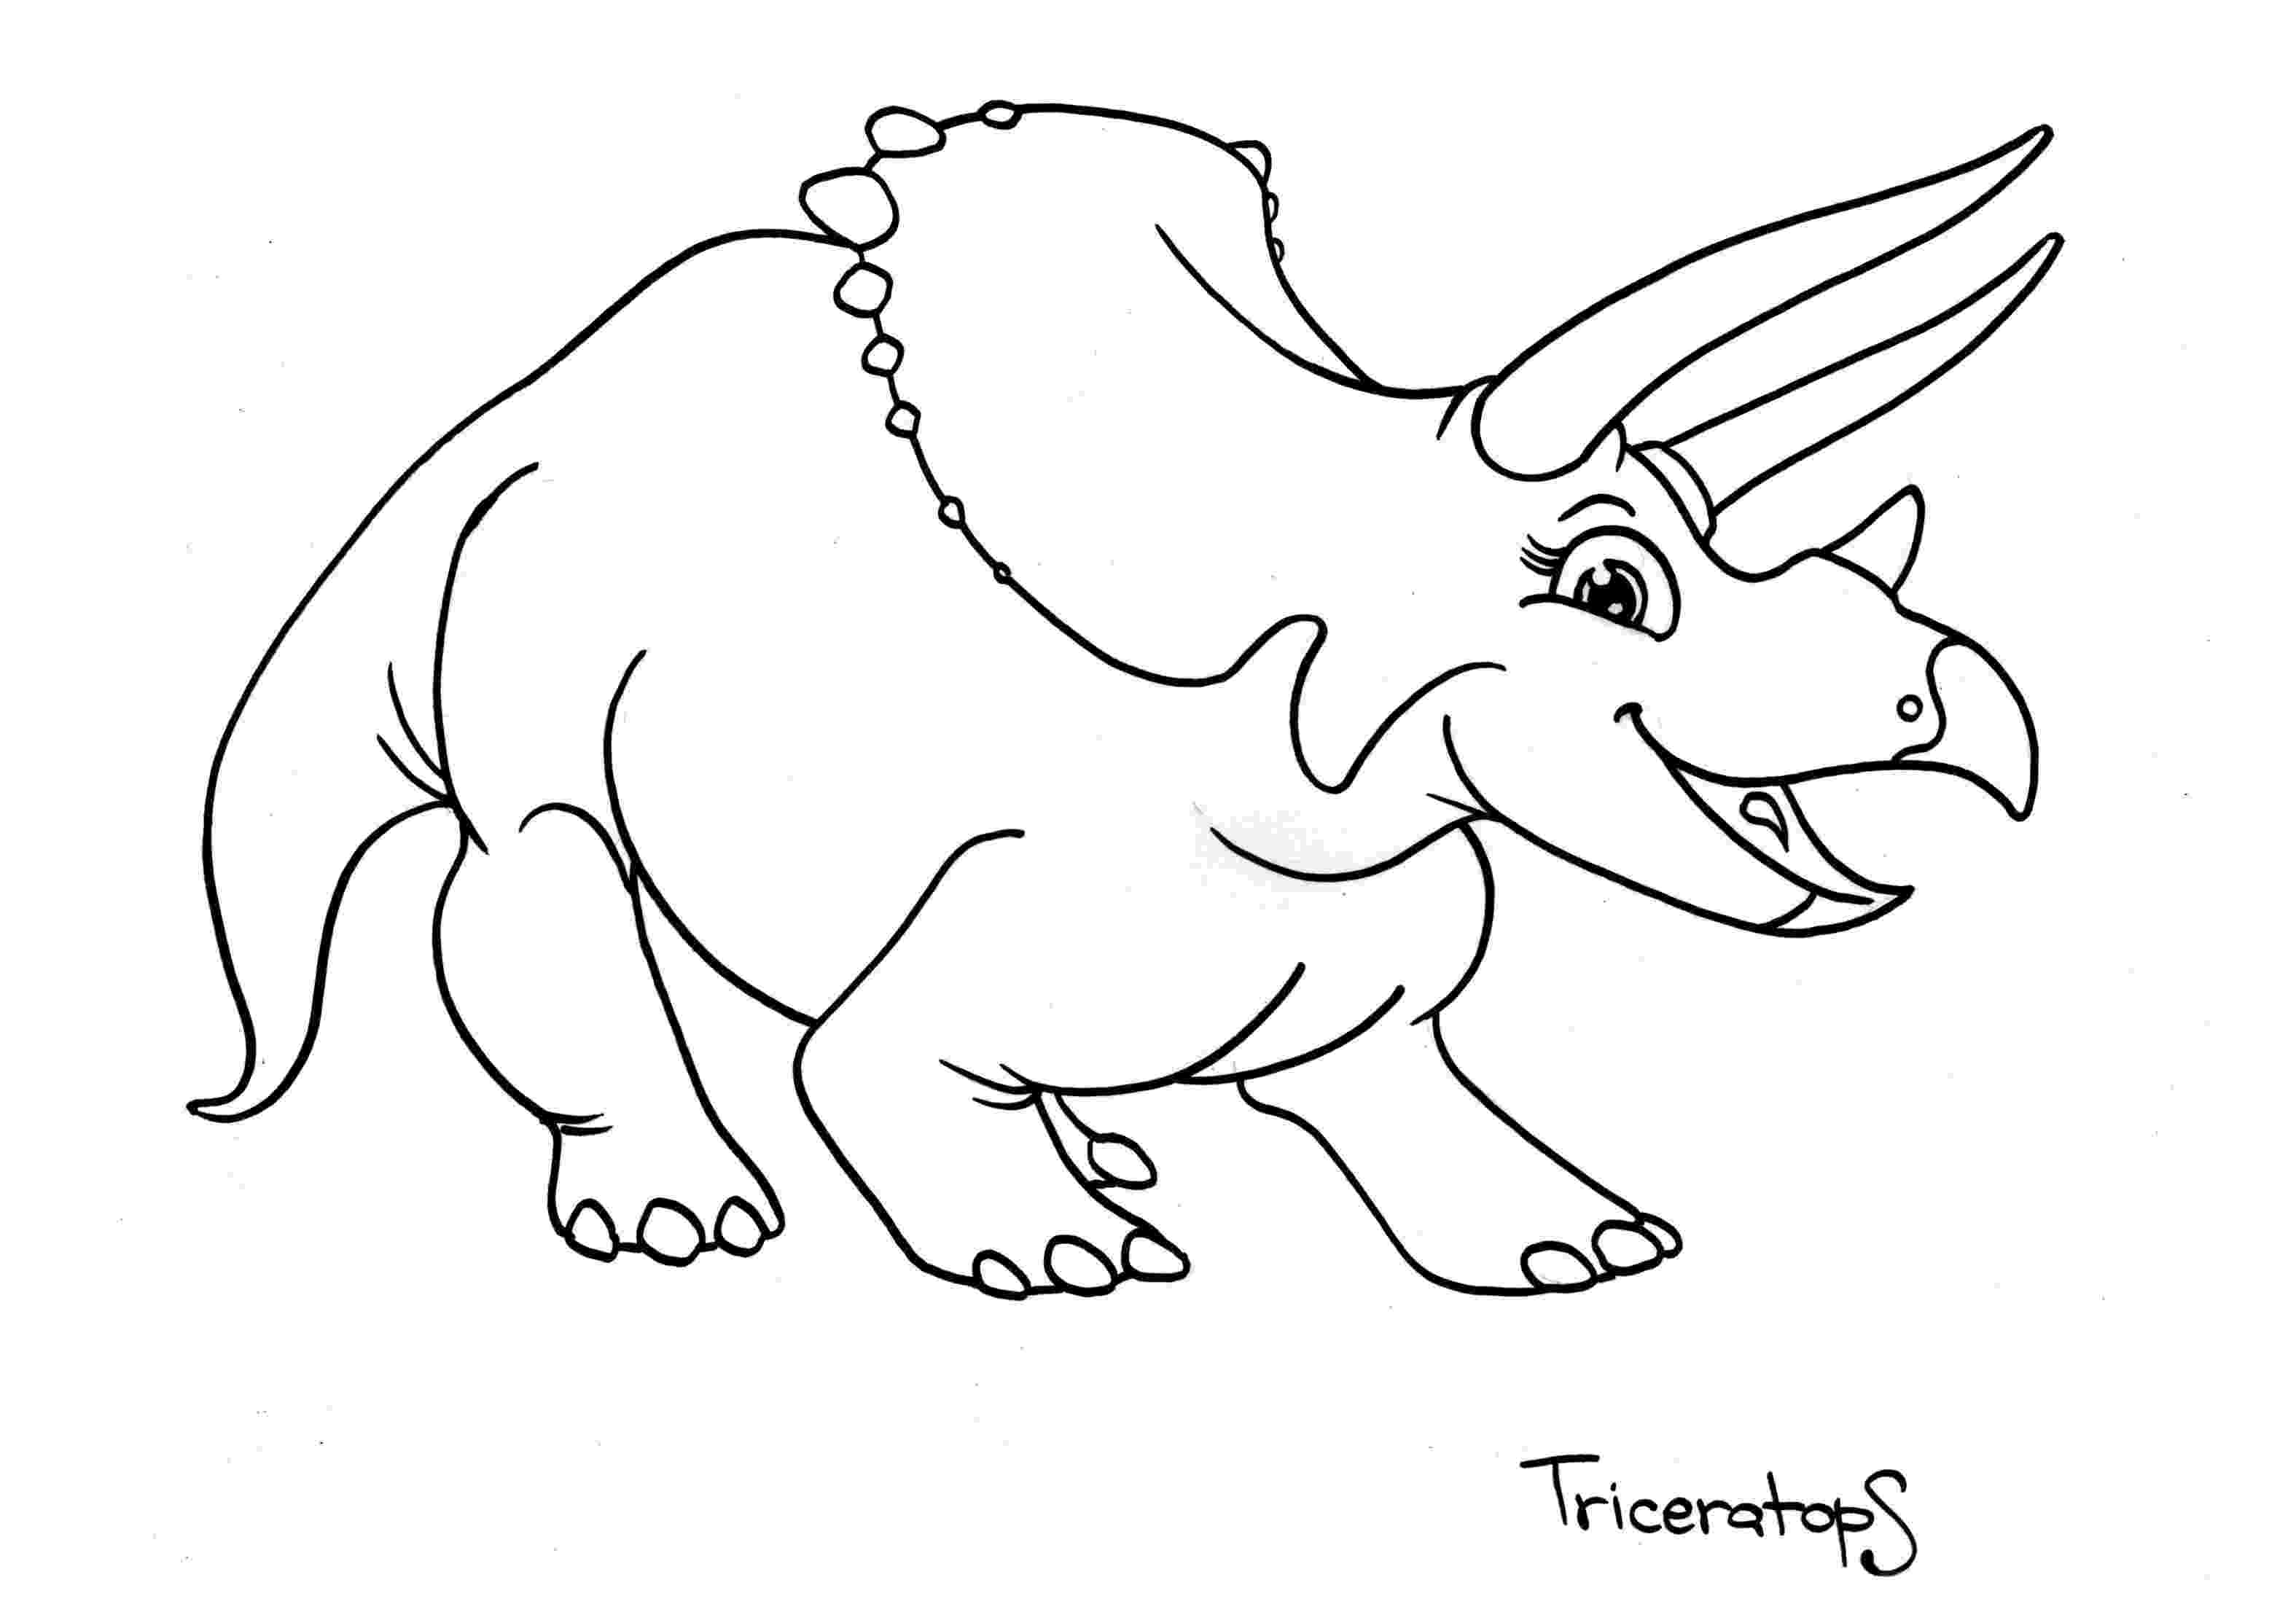 dinosaur color the good dinosaur coloring pages disneyclipscom dinosaur color